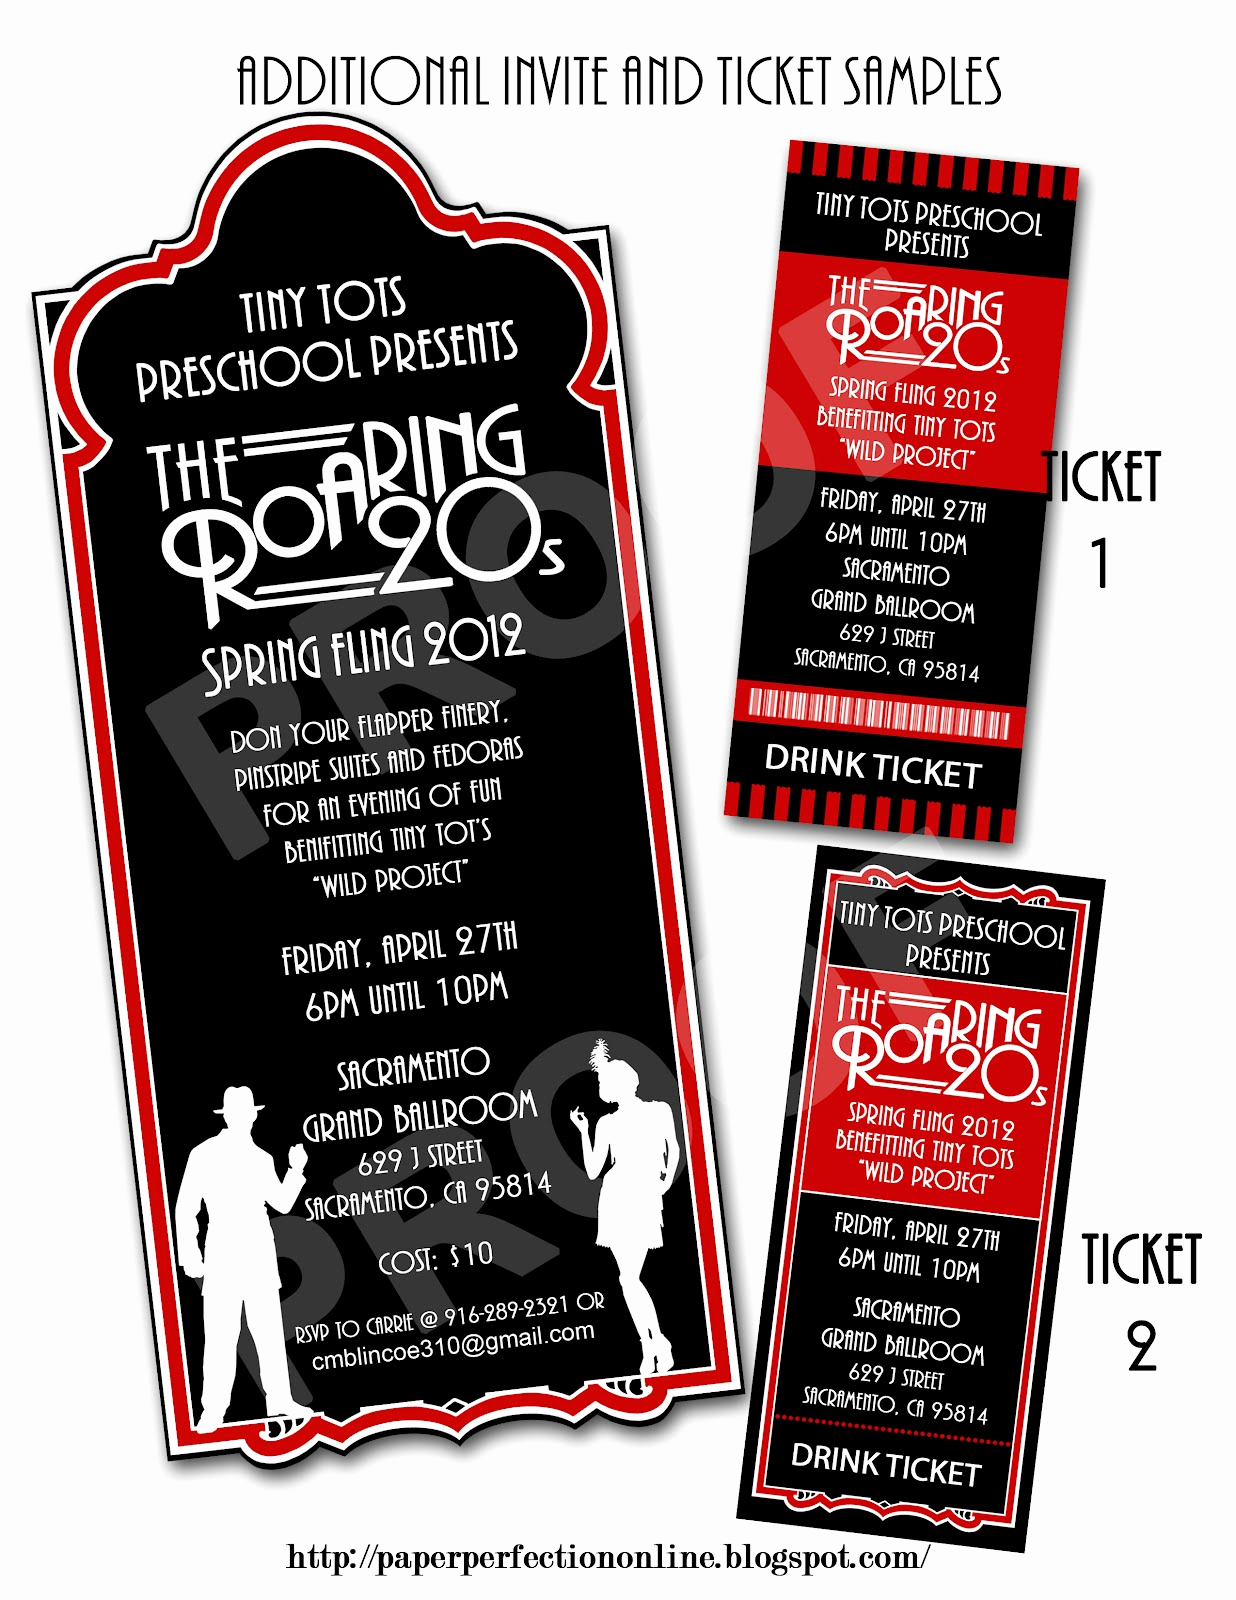 1920s Party Invitation Template Free Beautiful Paper Perfection Roaring Twenties 1920s Party